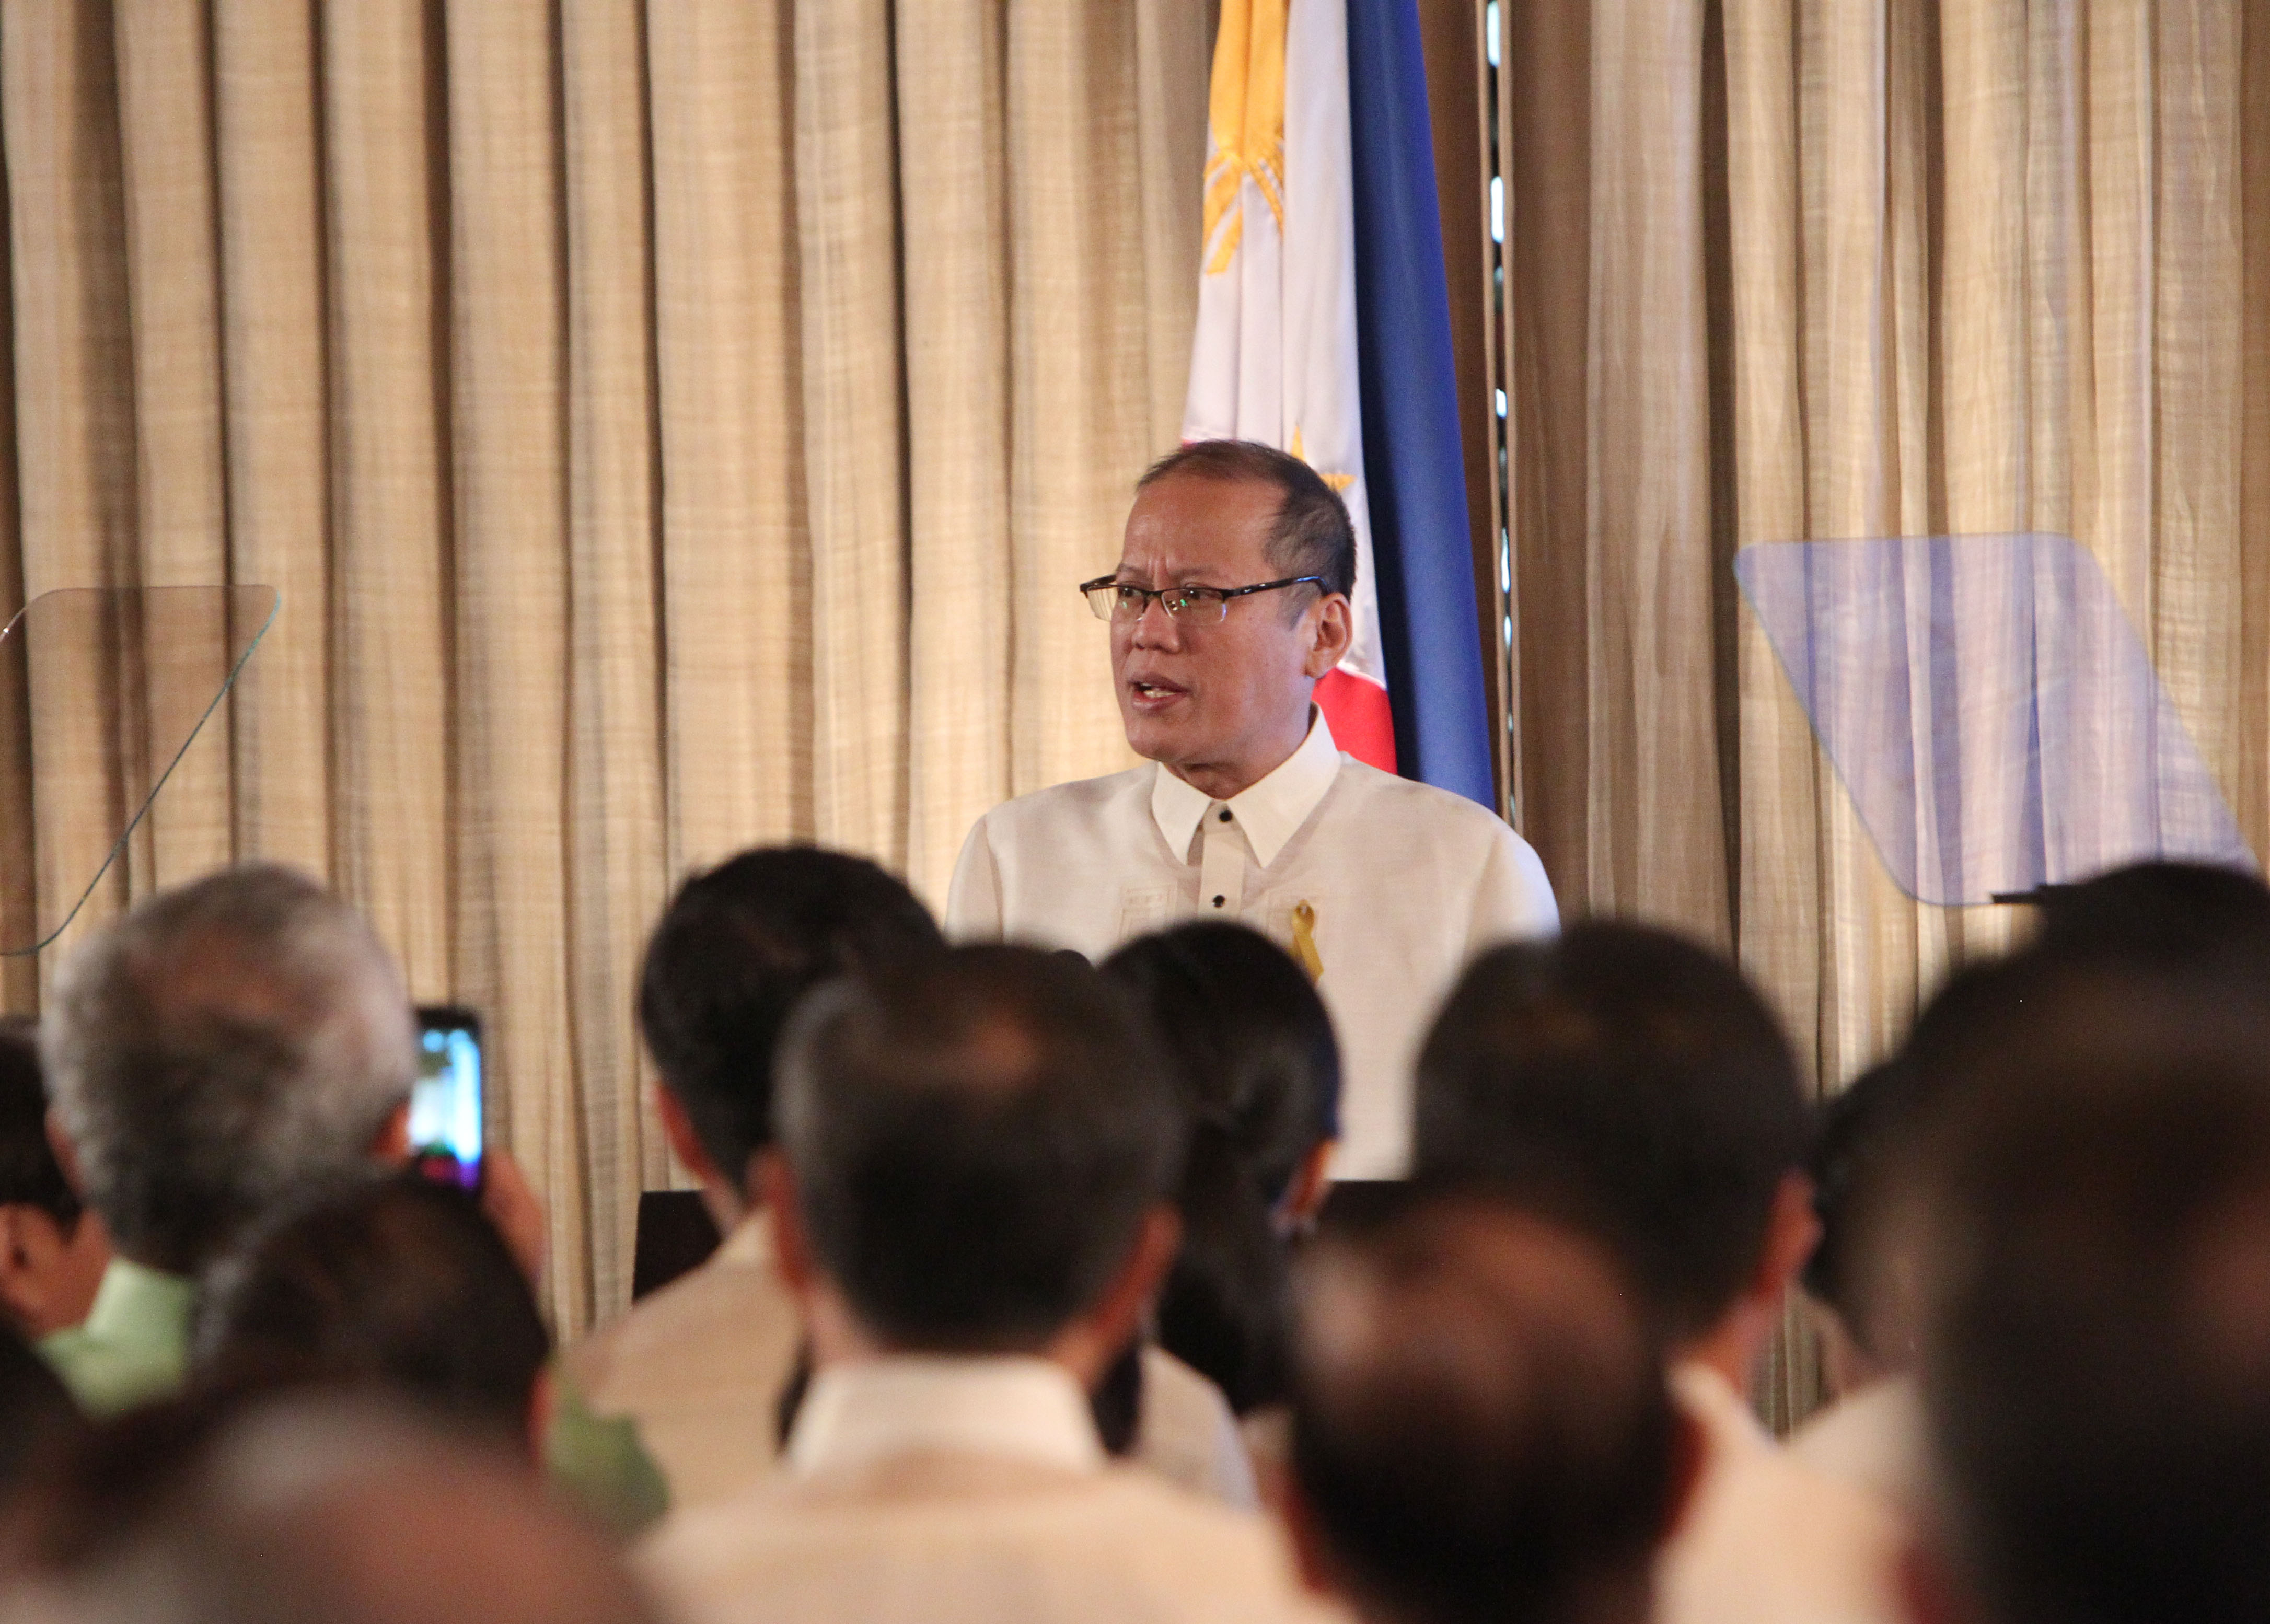 INDICTED. Former president Benigno Aquino III faces graft and usurpation of authorities charges for his role in the botched Mamasapano operations. File photo by Lauro Montellano Jr./ Malacanang Photo Bureau